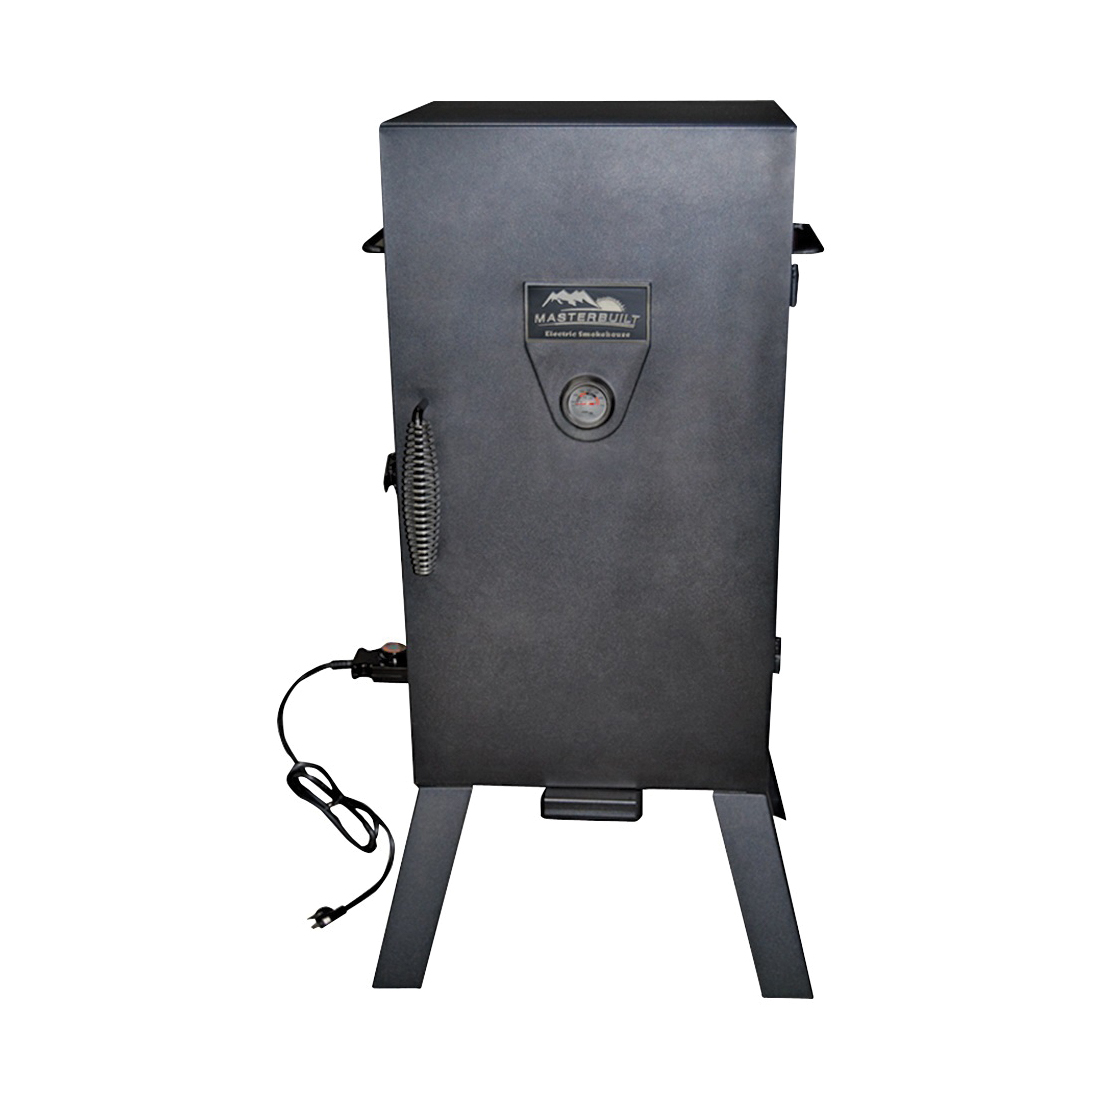 Picture of Masterbuilt 20070210 Electric Smoker, Black